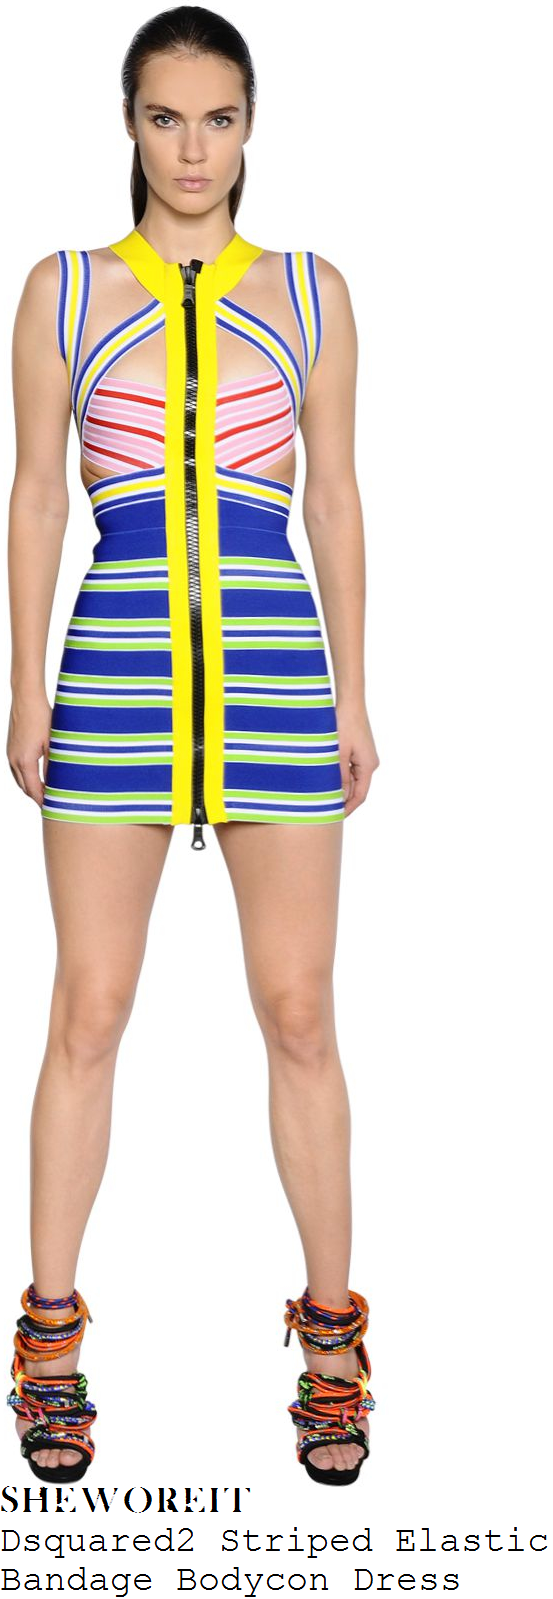 alesha-dixon-dsquared2-yellow-blue-white-pink-red-and-multicoloured-striped-criss-cross-detail-bandage-mini-dress